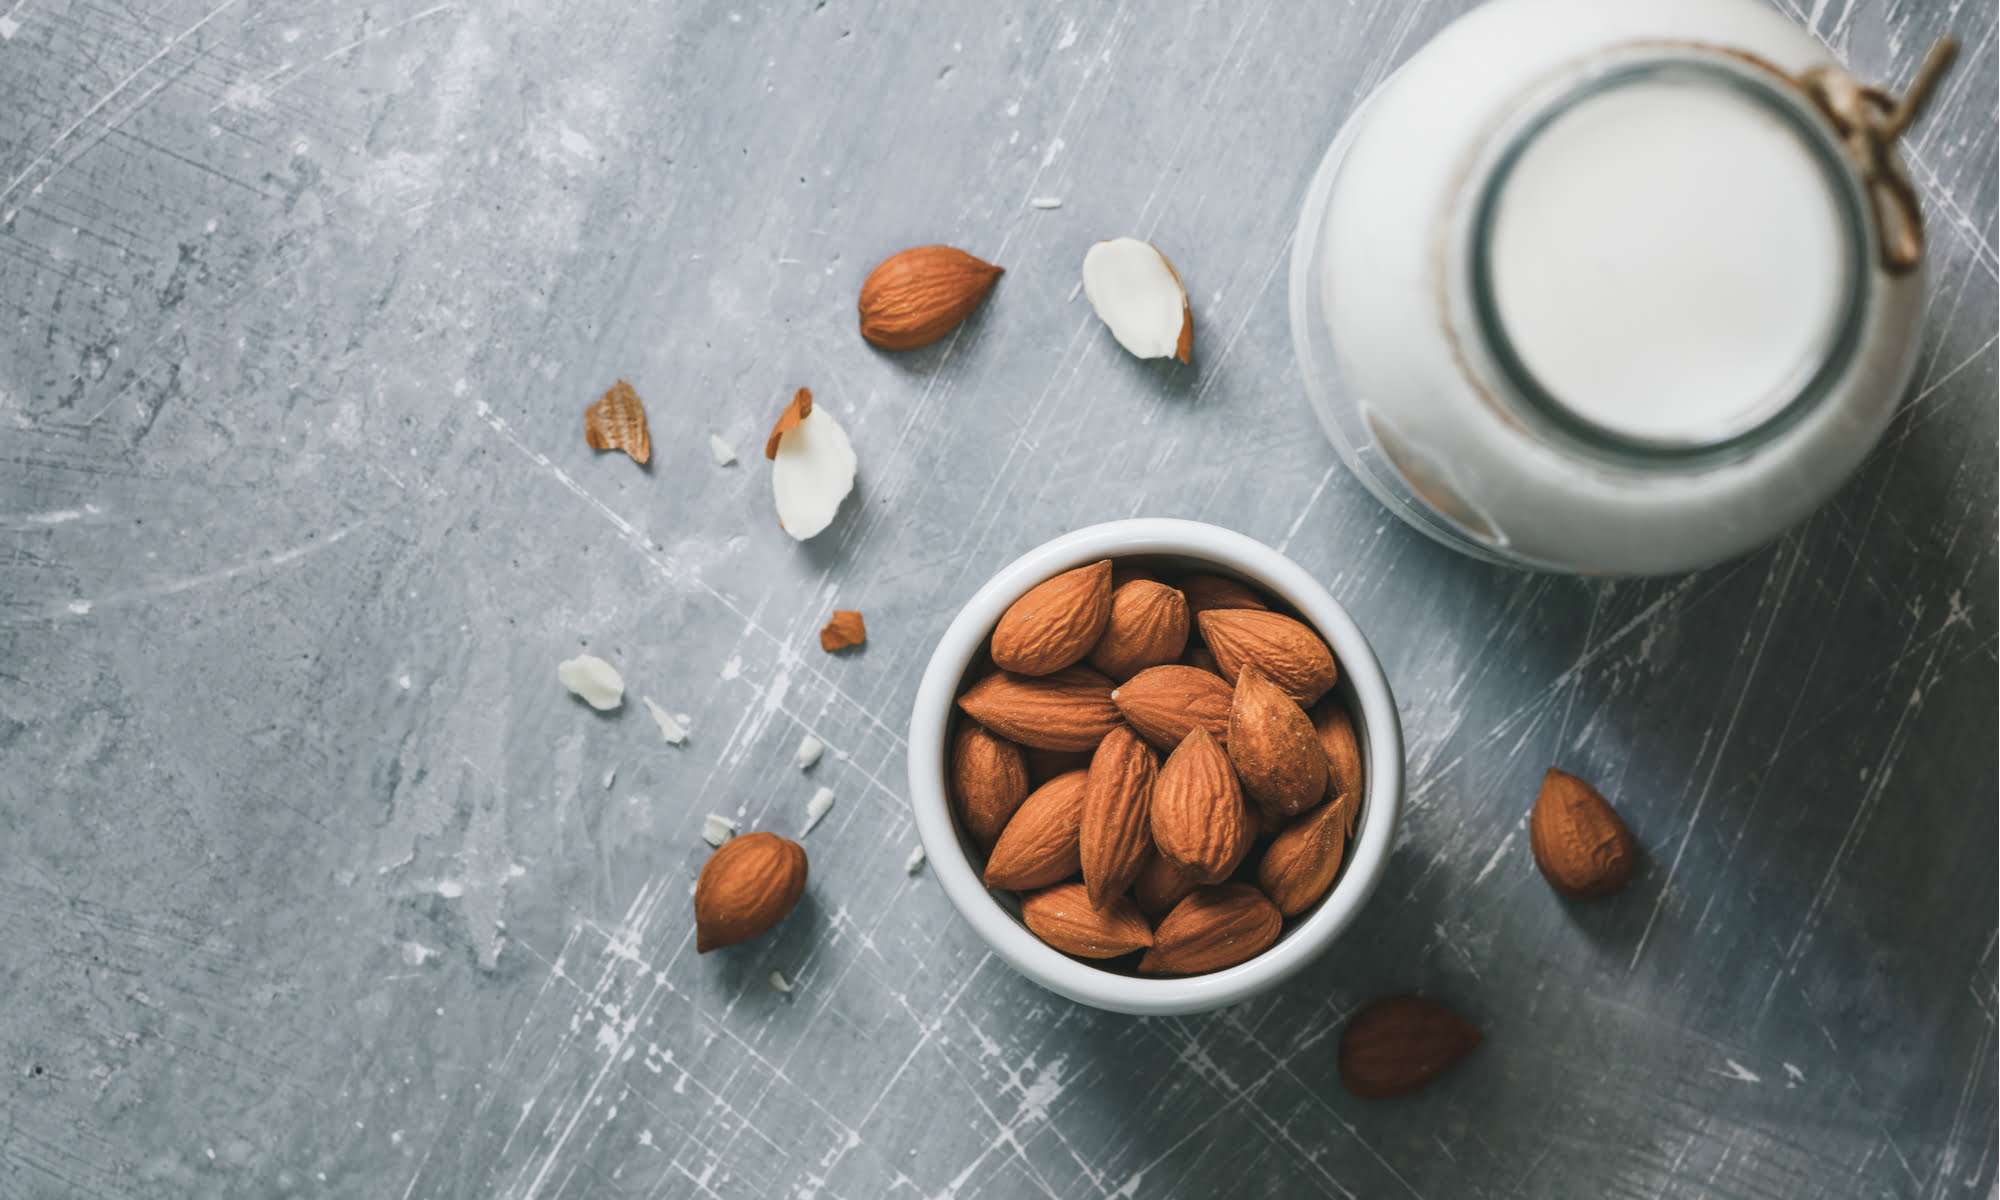 5 Dreamy Almond Pulp Recipes You'll Go Nuts For